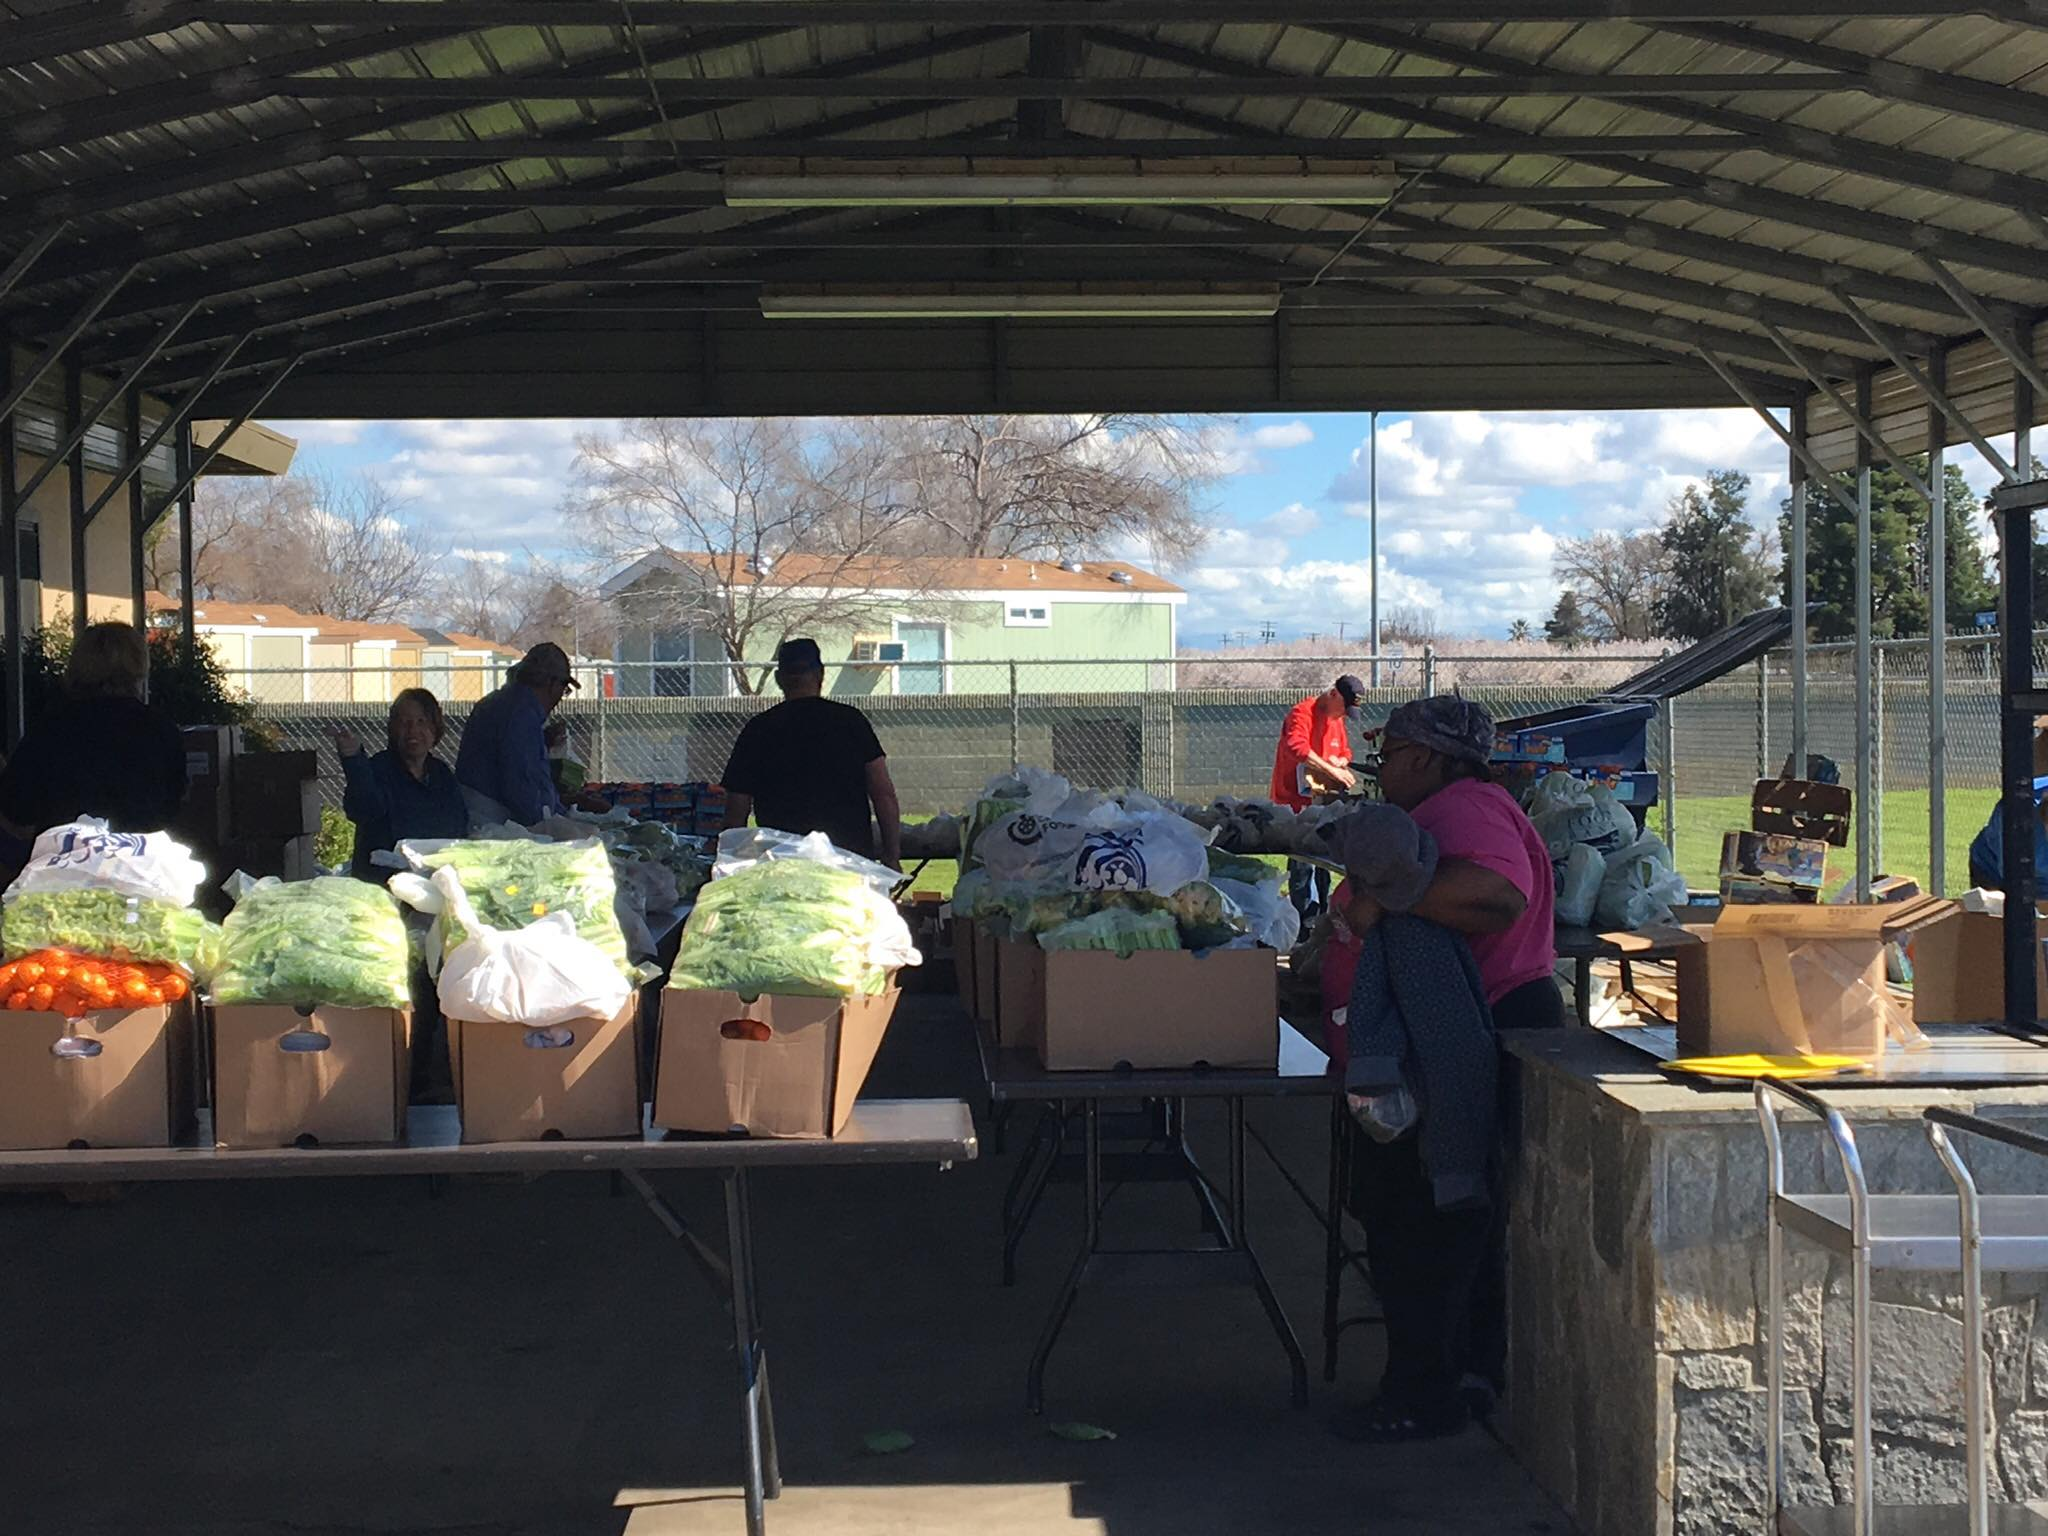 The Pixley Foundation Food Pantry